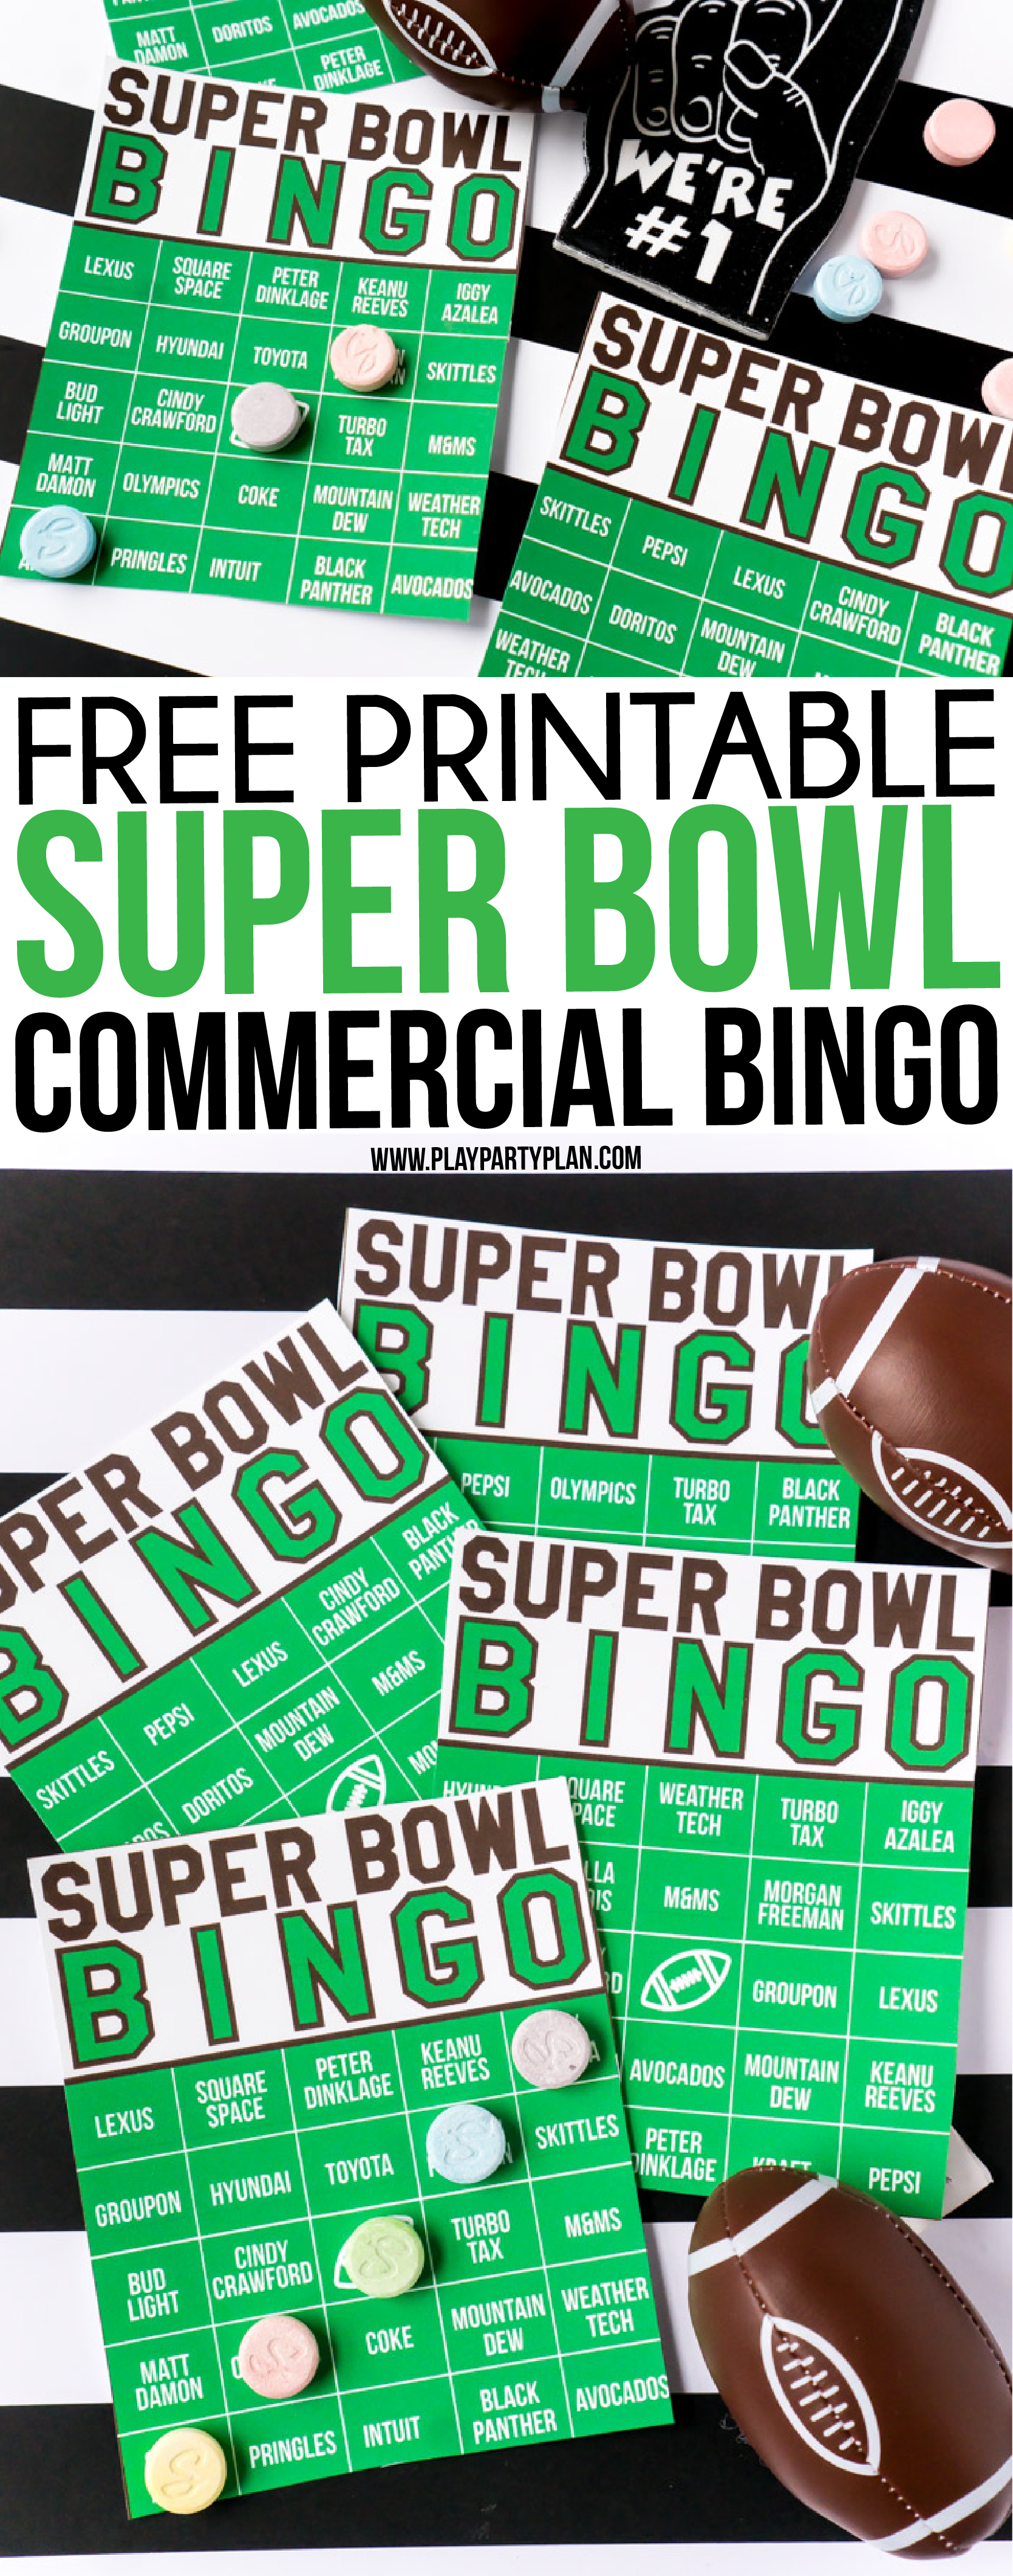 These Super Bowl commercial bingo cards are one of the best Super Bowl party games ever! Just print out the printables, hand out on Super Bowl Sunday, watch the funny (and not so funny commercials) and plays! One of our favorite Super Bowl party ideas! via @playpartyplan